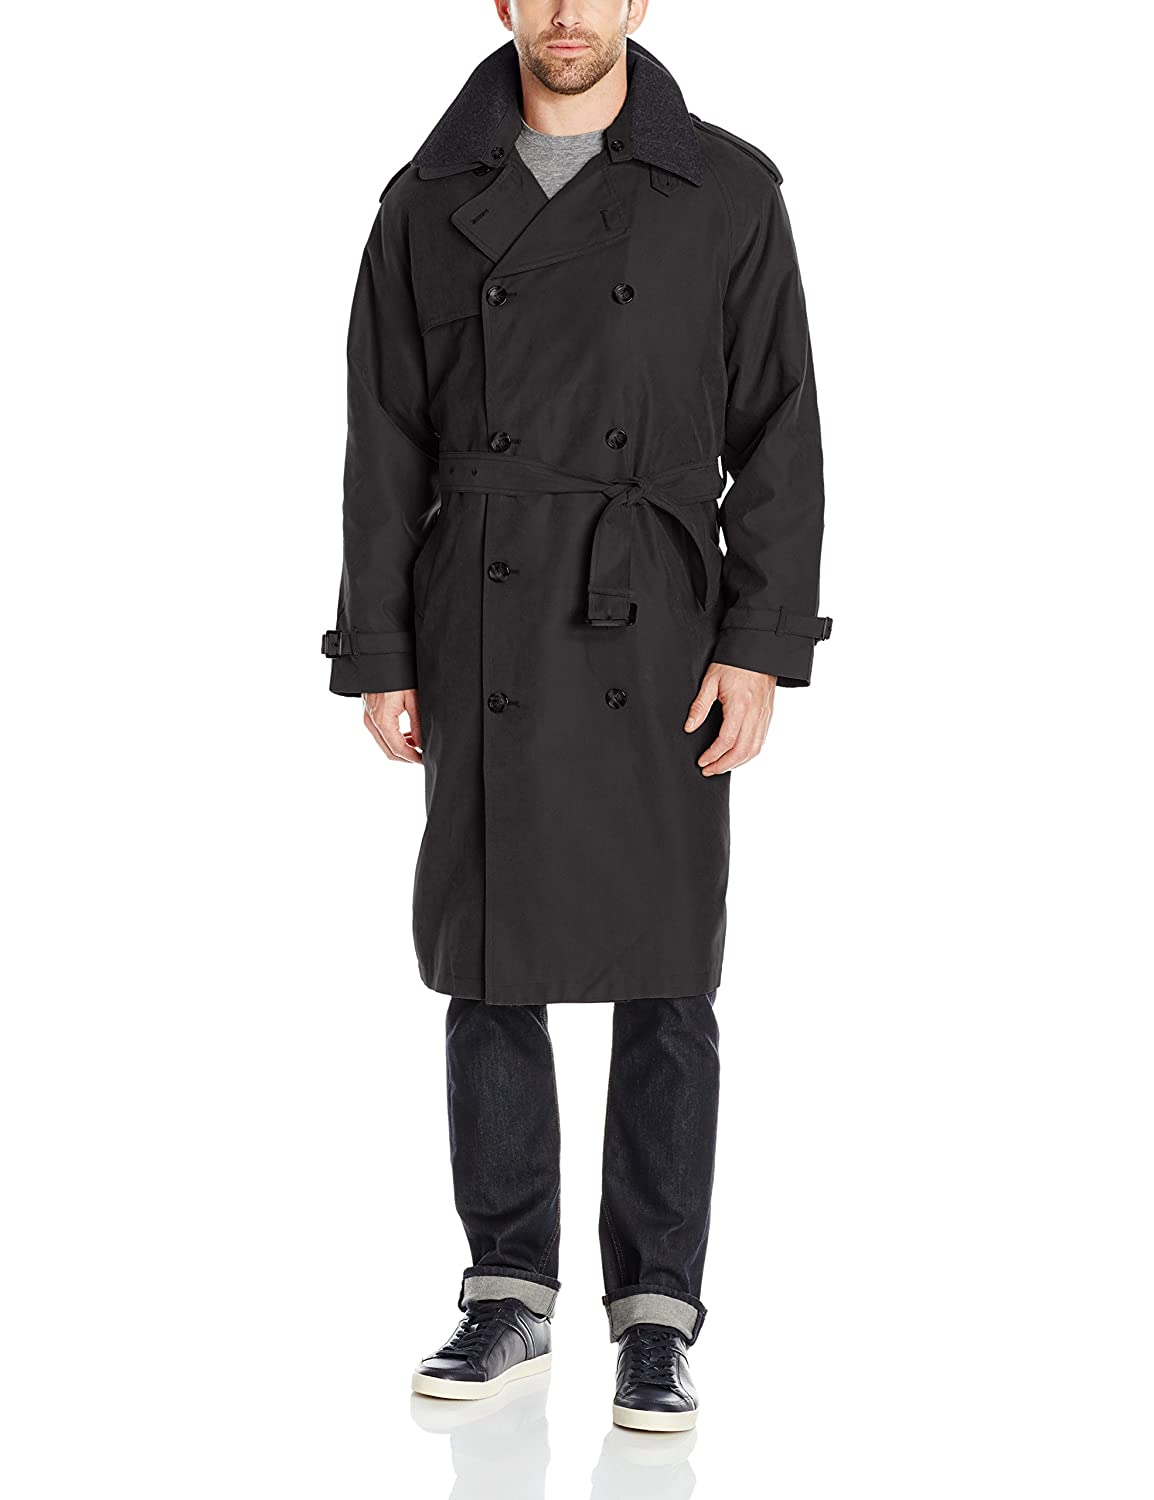 Men's Vintage Style Coats and Jackets London Fog Mens Iconic Trench Coat $450.00 AT vintagedancer.com